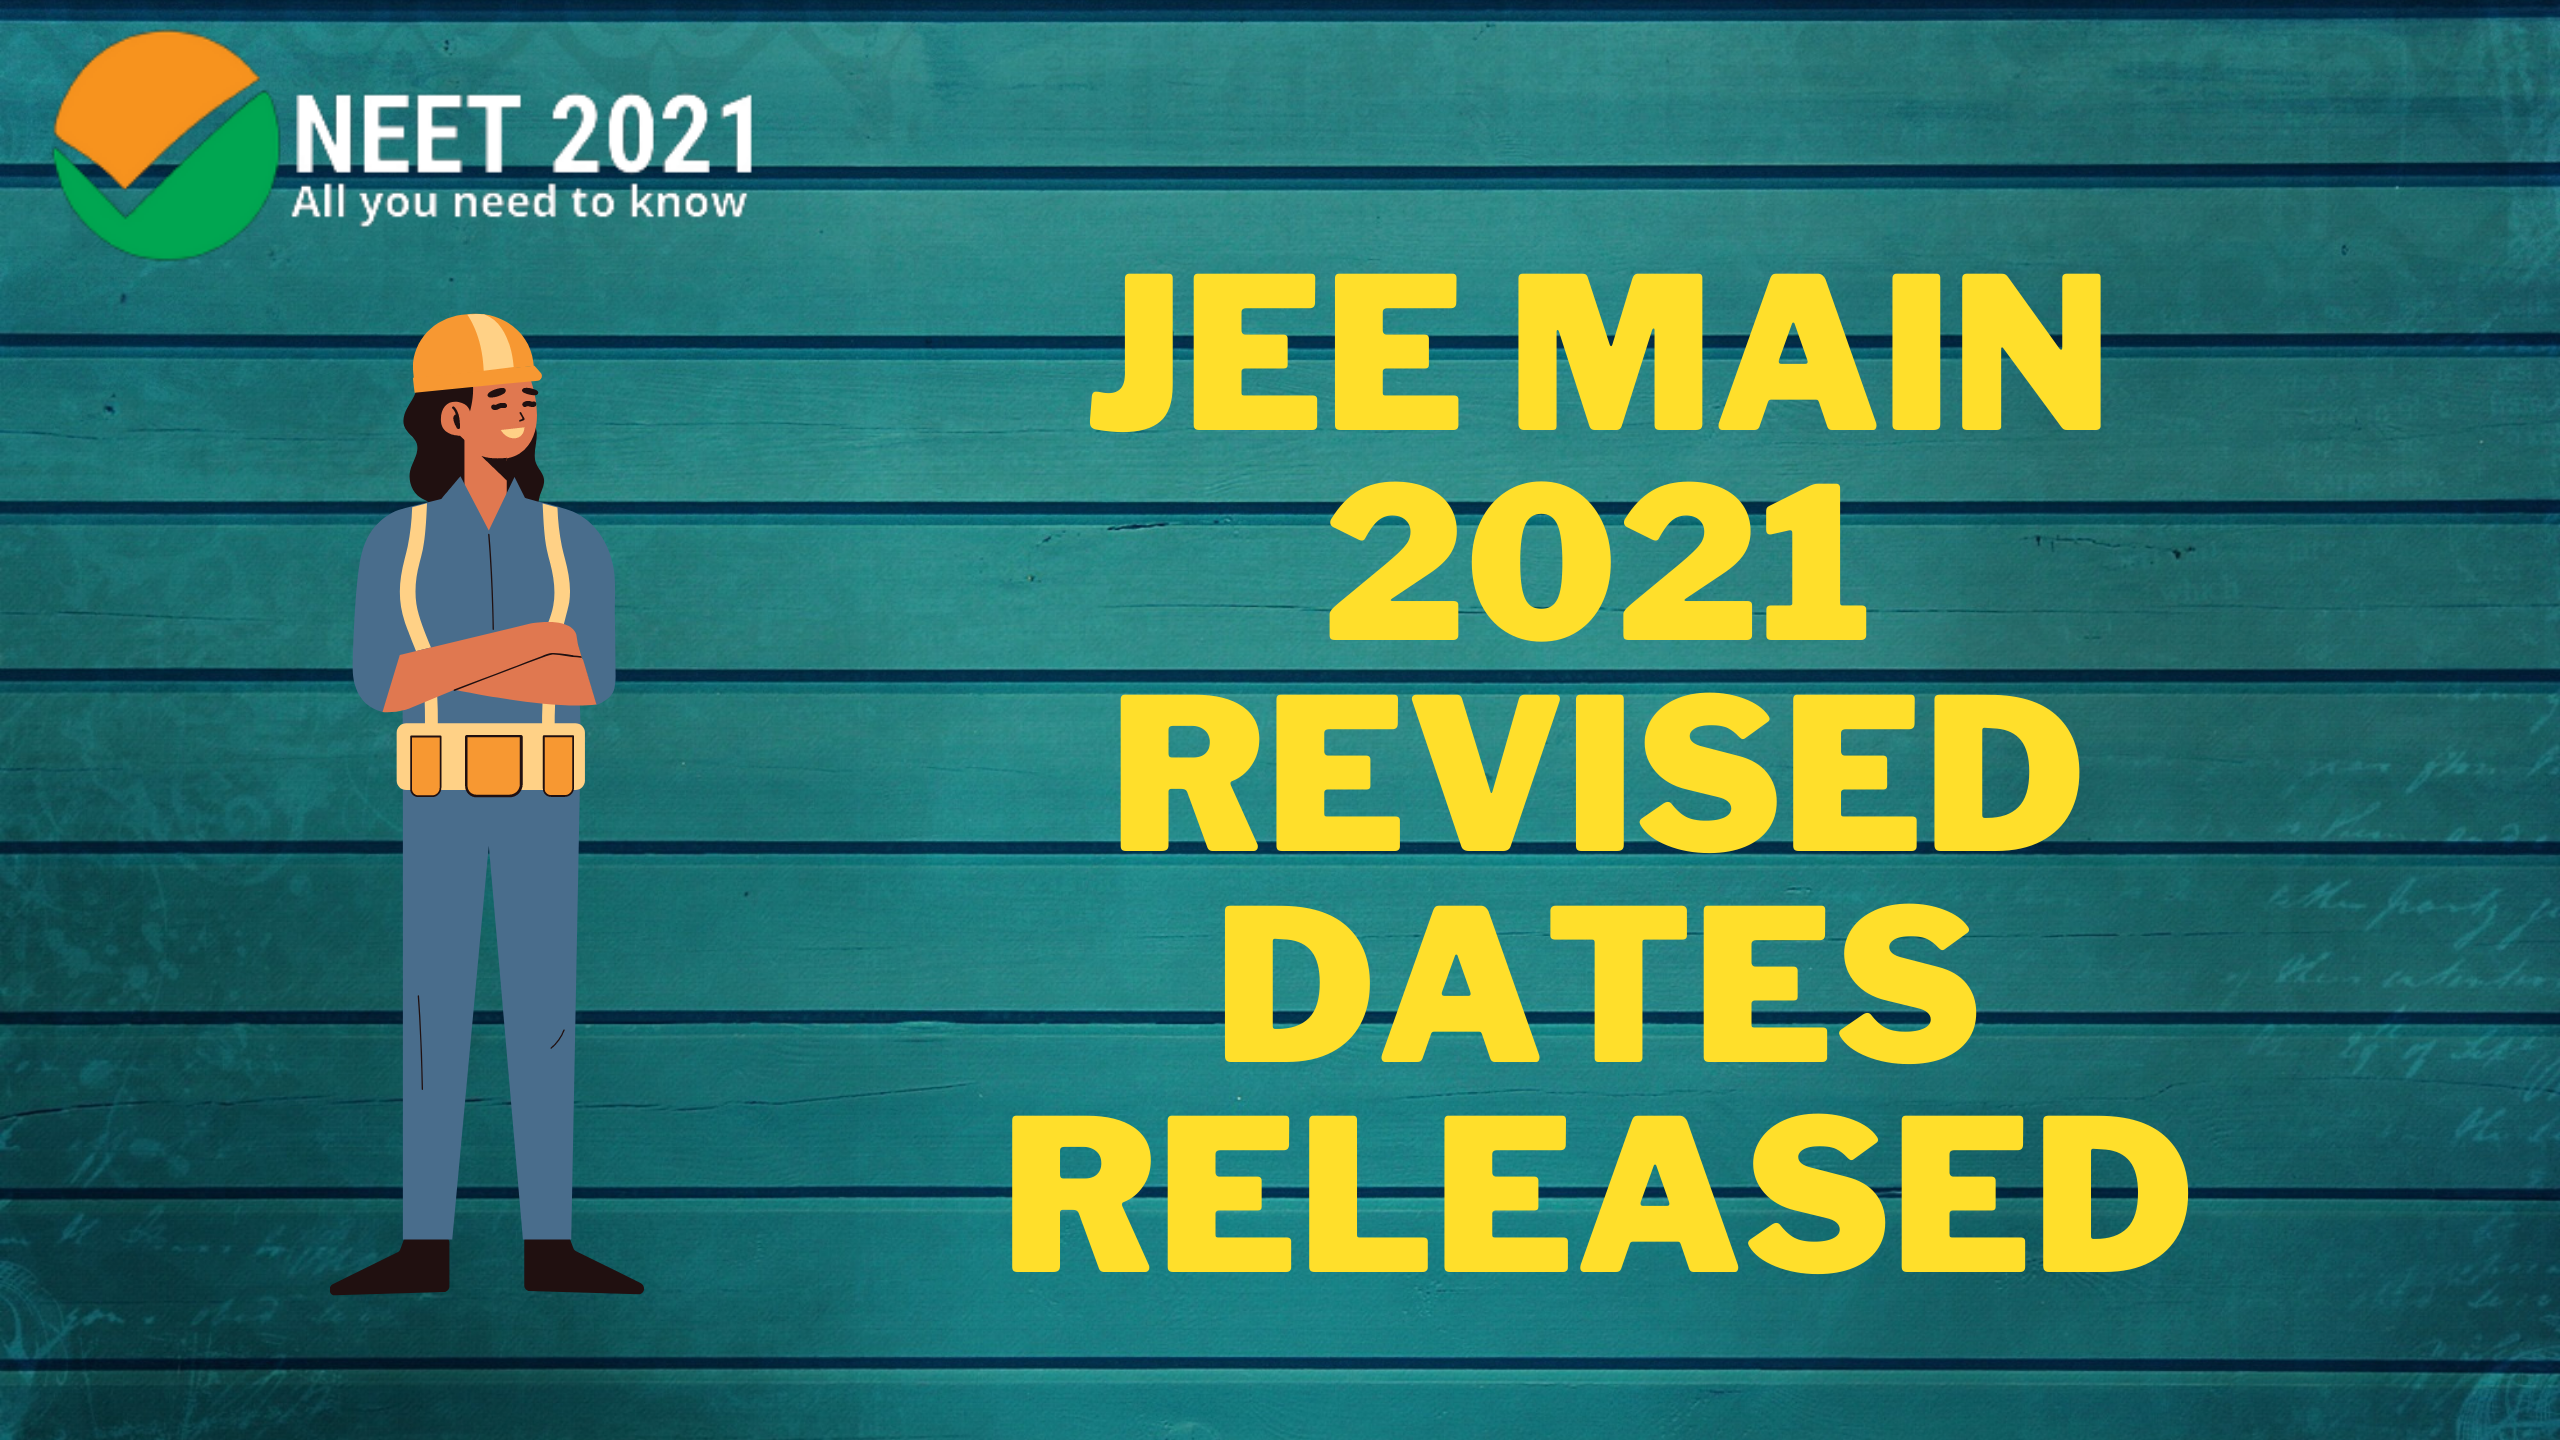 JEE Main 2021 Revised Dates Released